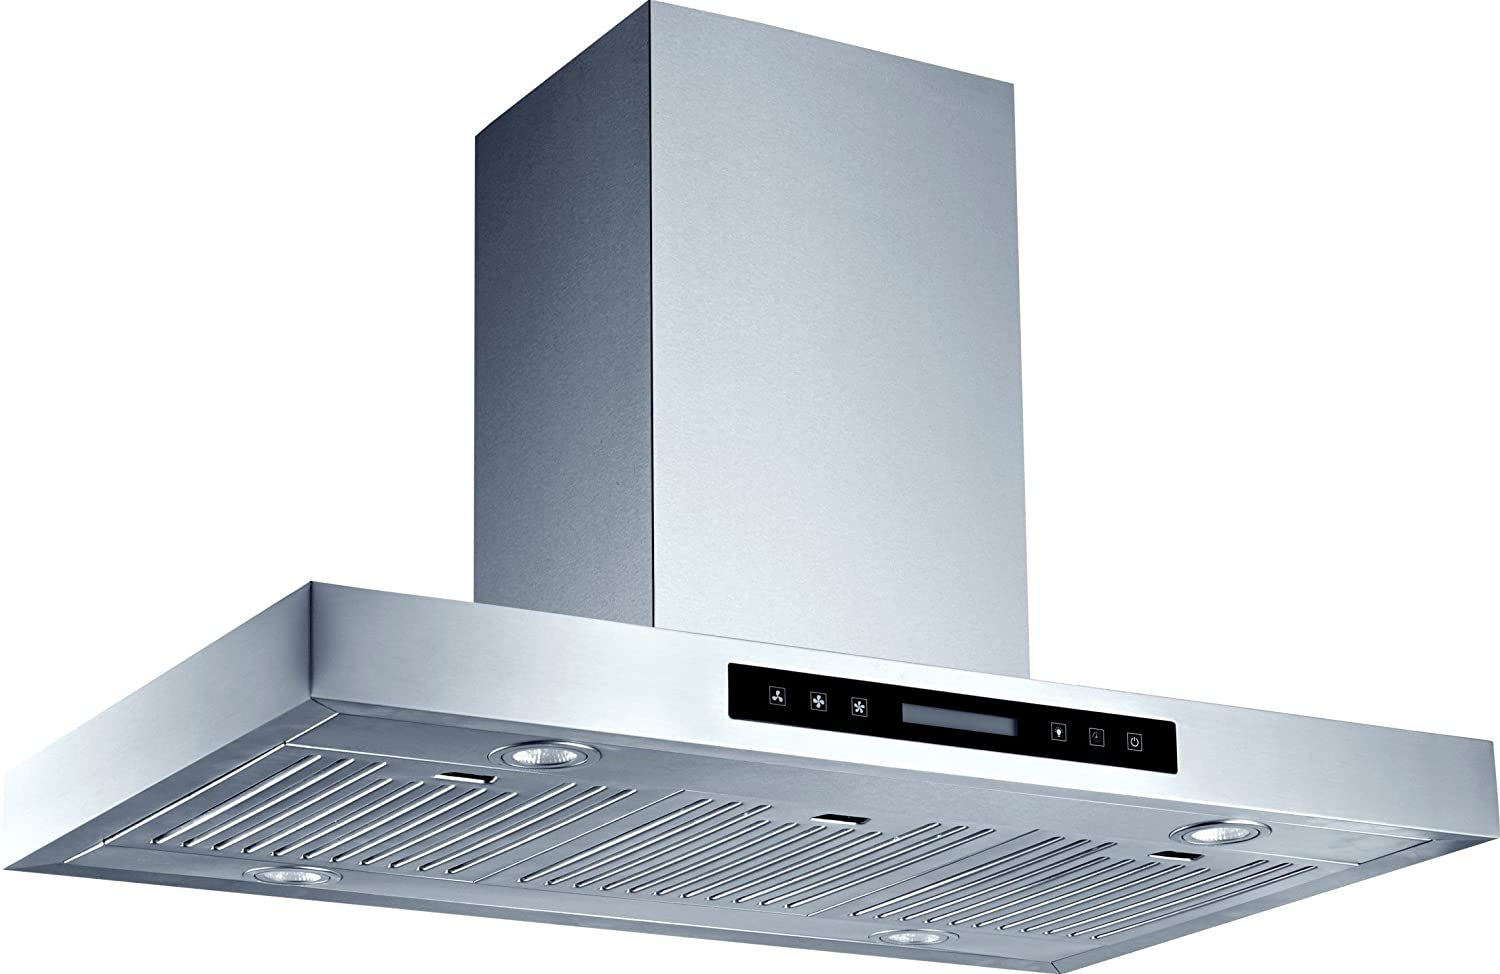 Brand New 36 in Stainless Steel Island Chimney Mount Vents Range Hood Kitchen 900 CFM